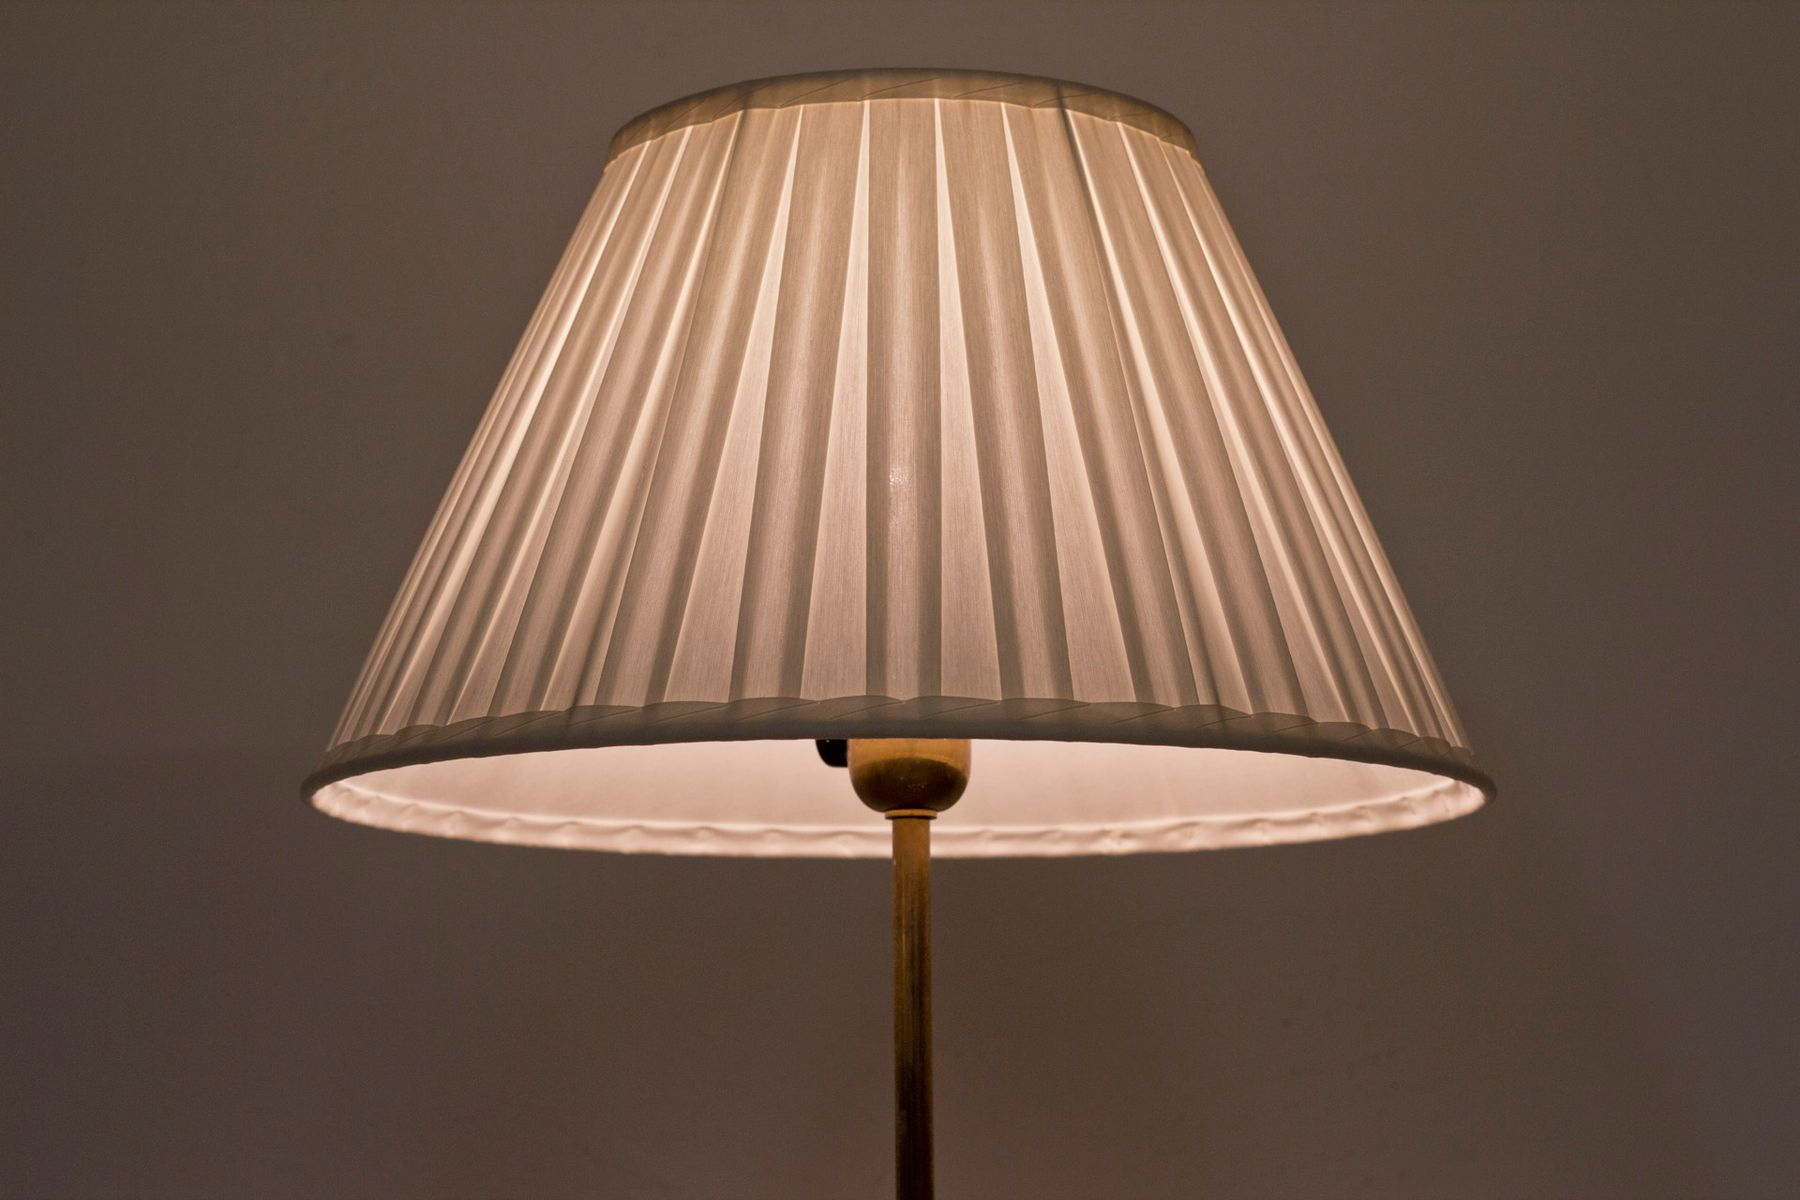 Brass floor lamps from cebe 1950s set of 2 for sale at for 1950s floor lamps